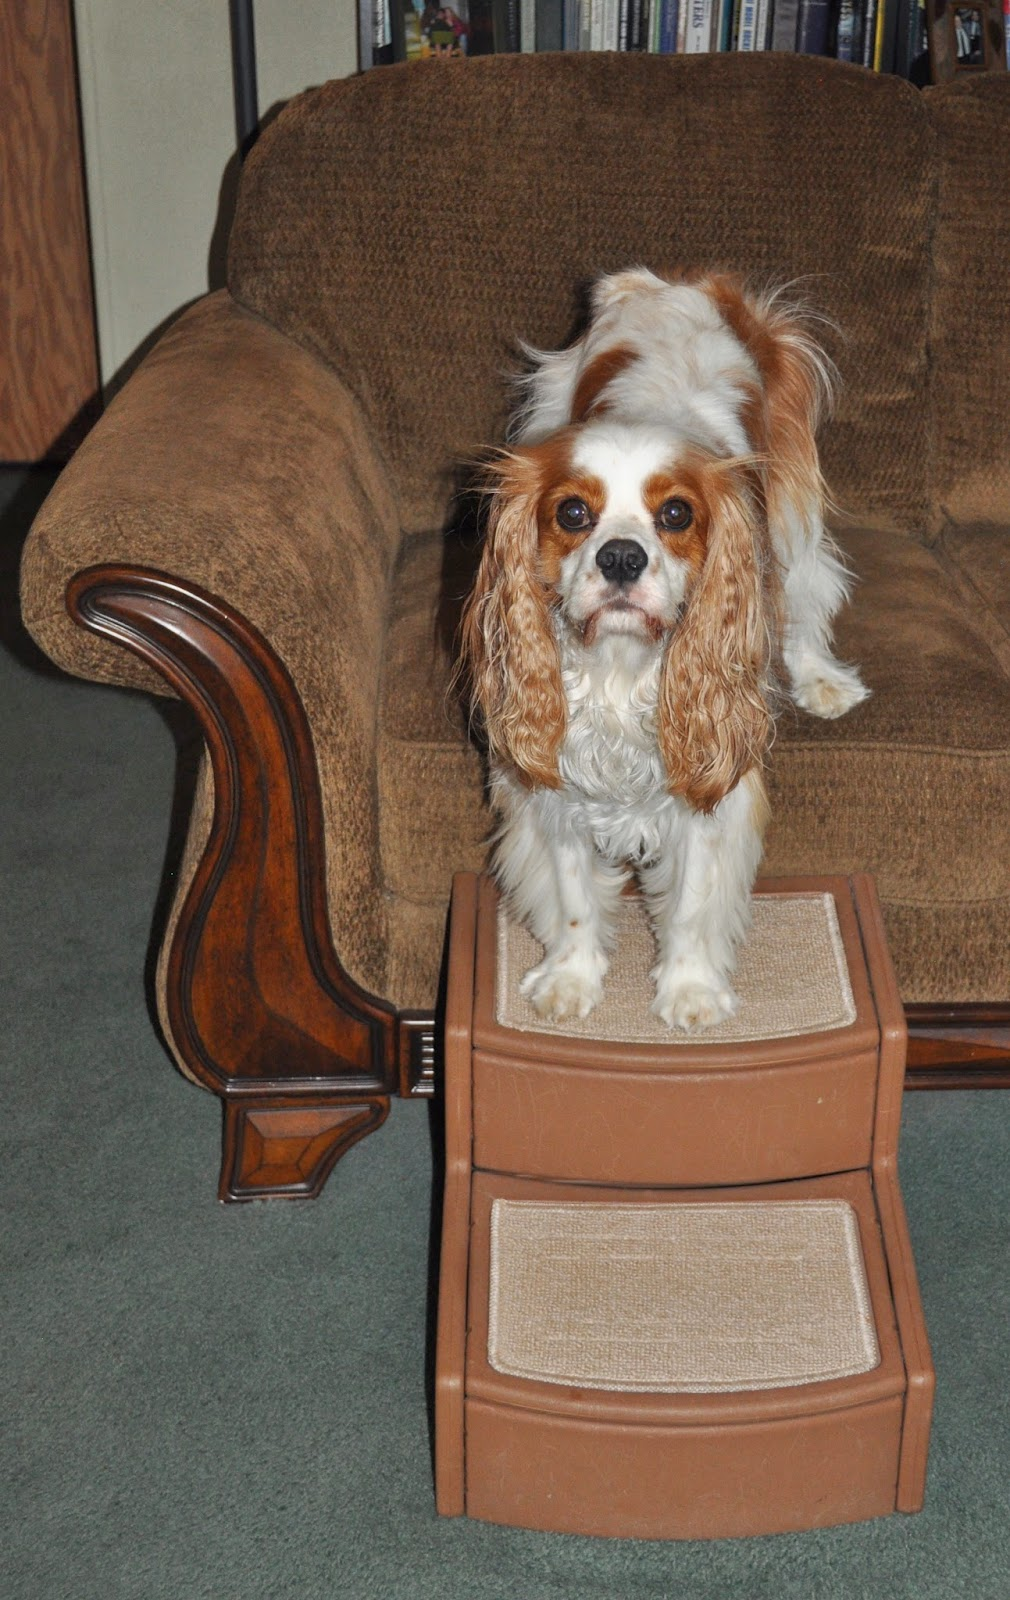 """The Pet Gear Easy Step II Pet Stairs measure 14"""" wide x 14"""" and were easily put together with a few snaps. They are extremely lightweight and easy to move from room to room. They are the perfect height for me and getting on the sofa. Even my brother Nutter The Cat uses them! Mom's big bed is very high up, so these would be too short for that."""